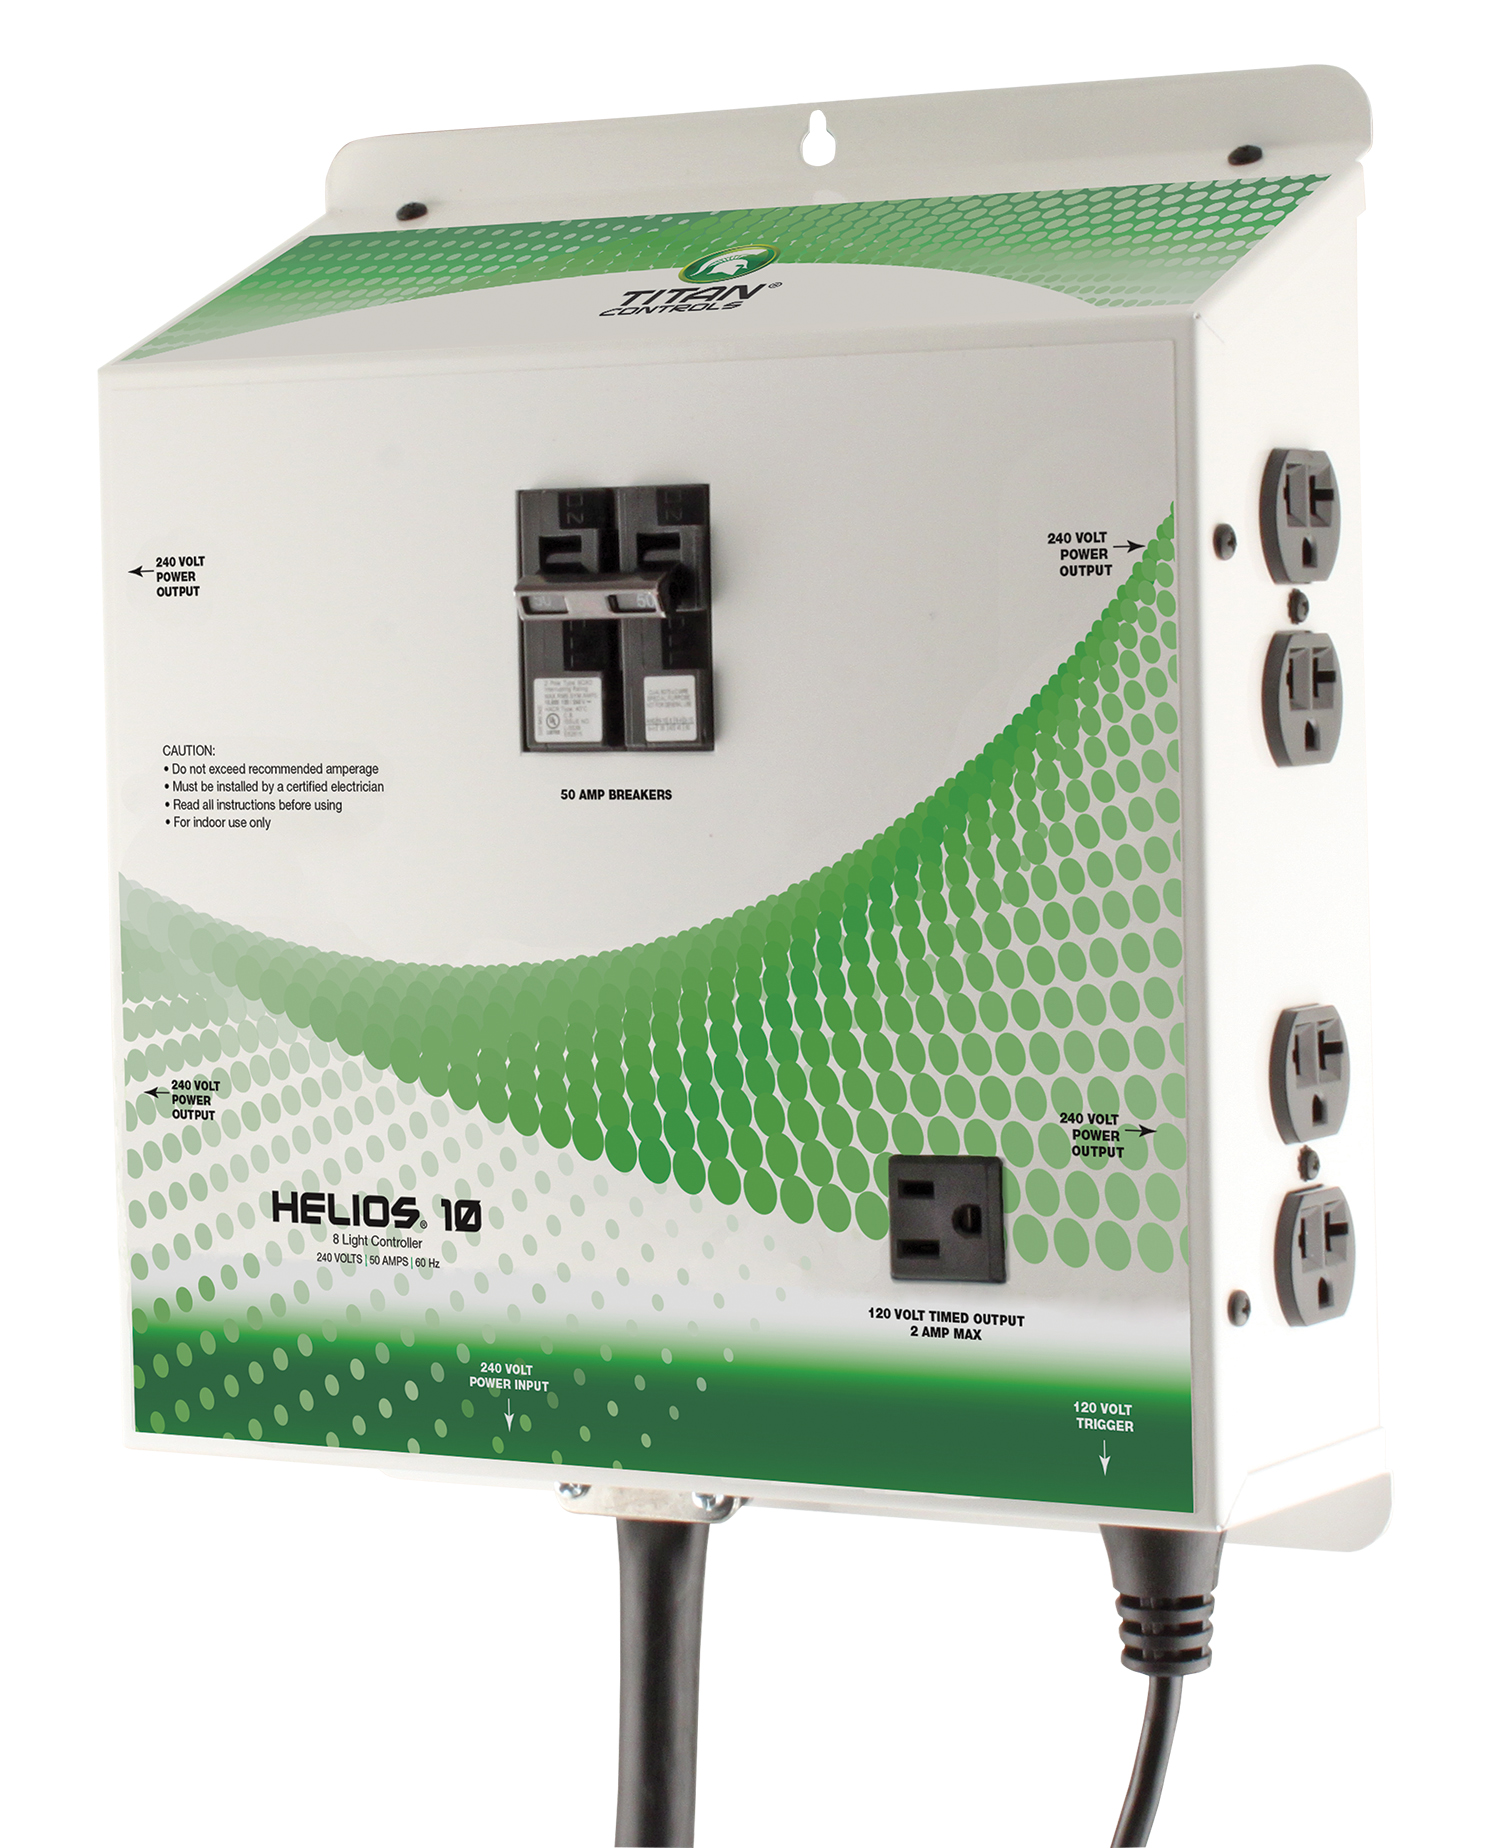 Titan Controls Helios 10 Pre Wired 8 Light 240v Controller With Hid Wiring Diagram Part 702679 Download Image